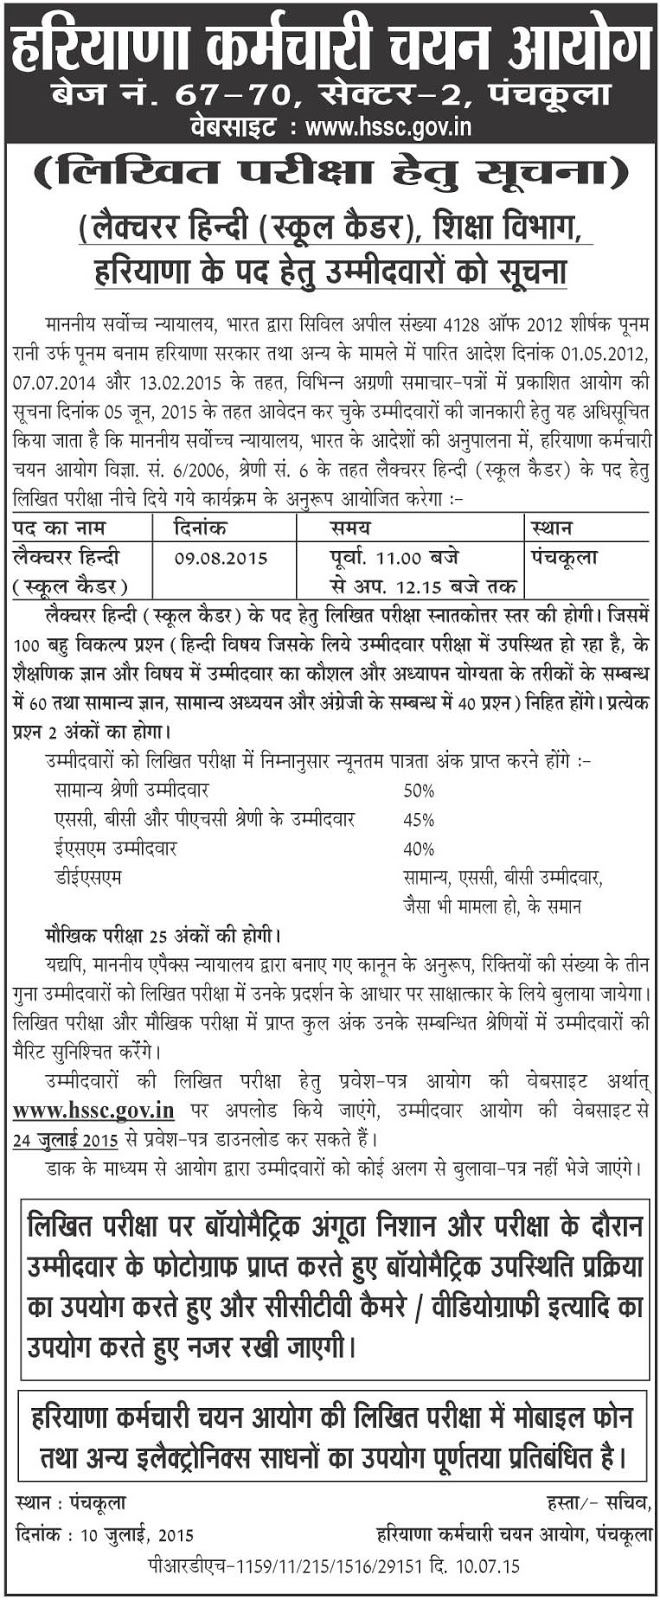 HSSC Recruitment for 54 Posts of Lecturer in Hindi 2015